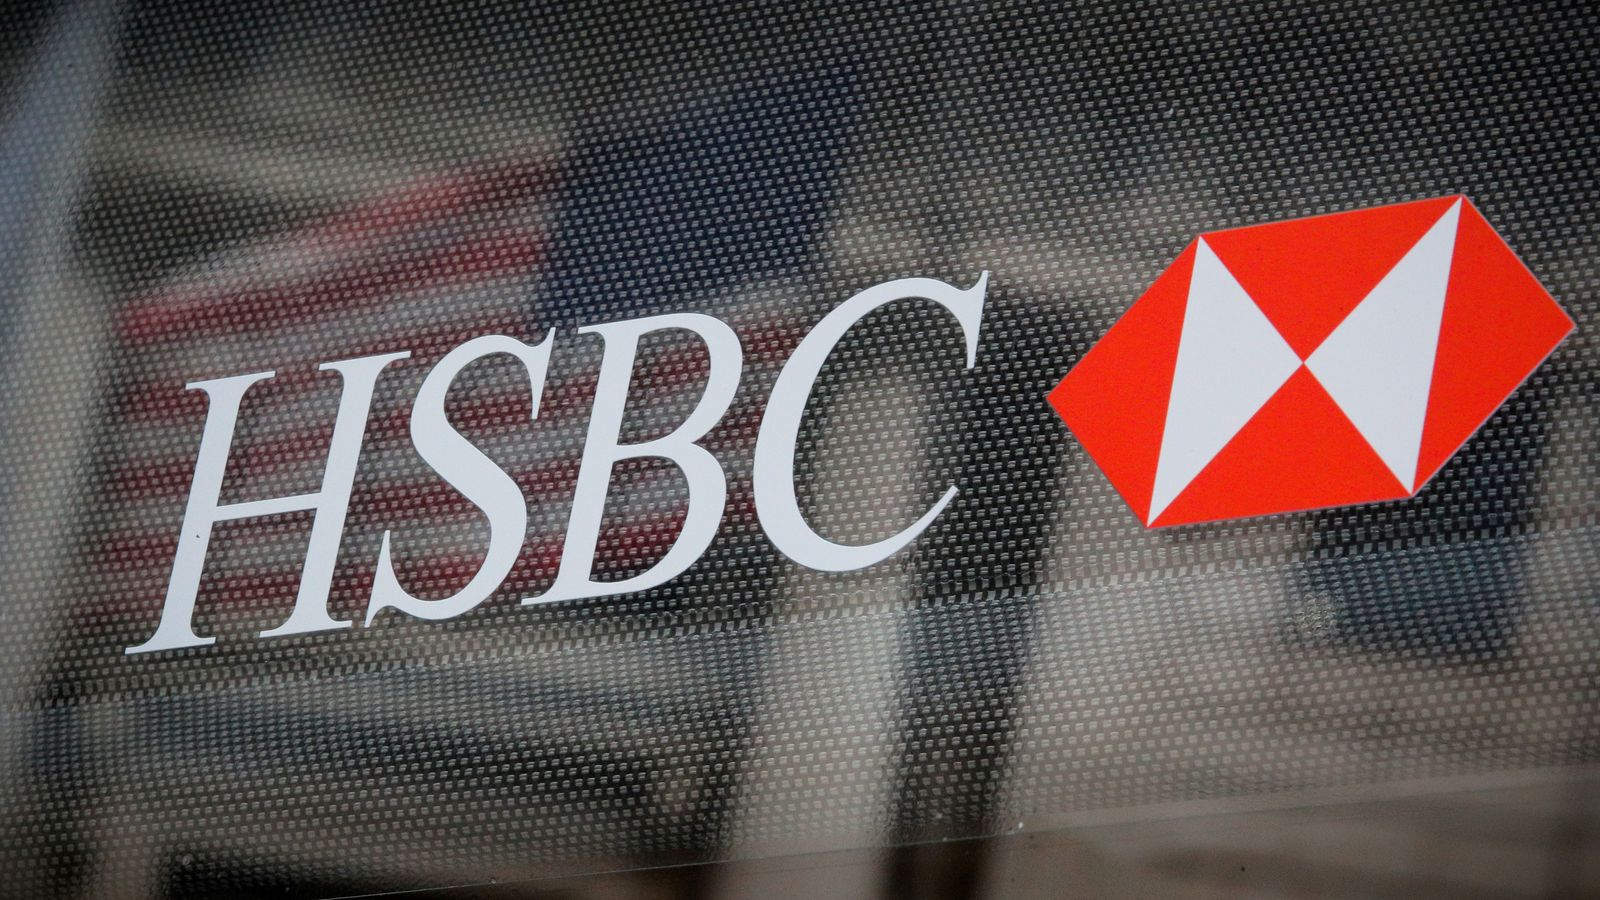 HSBC to shut 82 bank branches as customers shift online